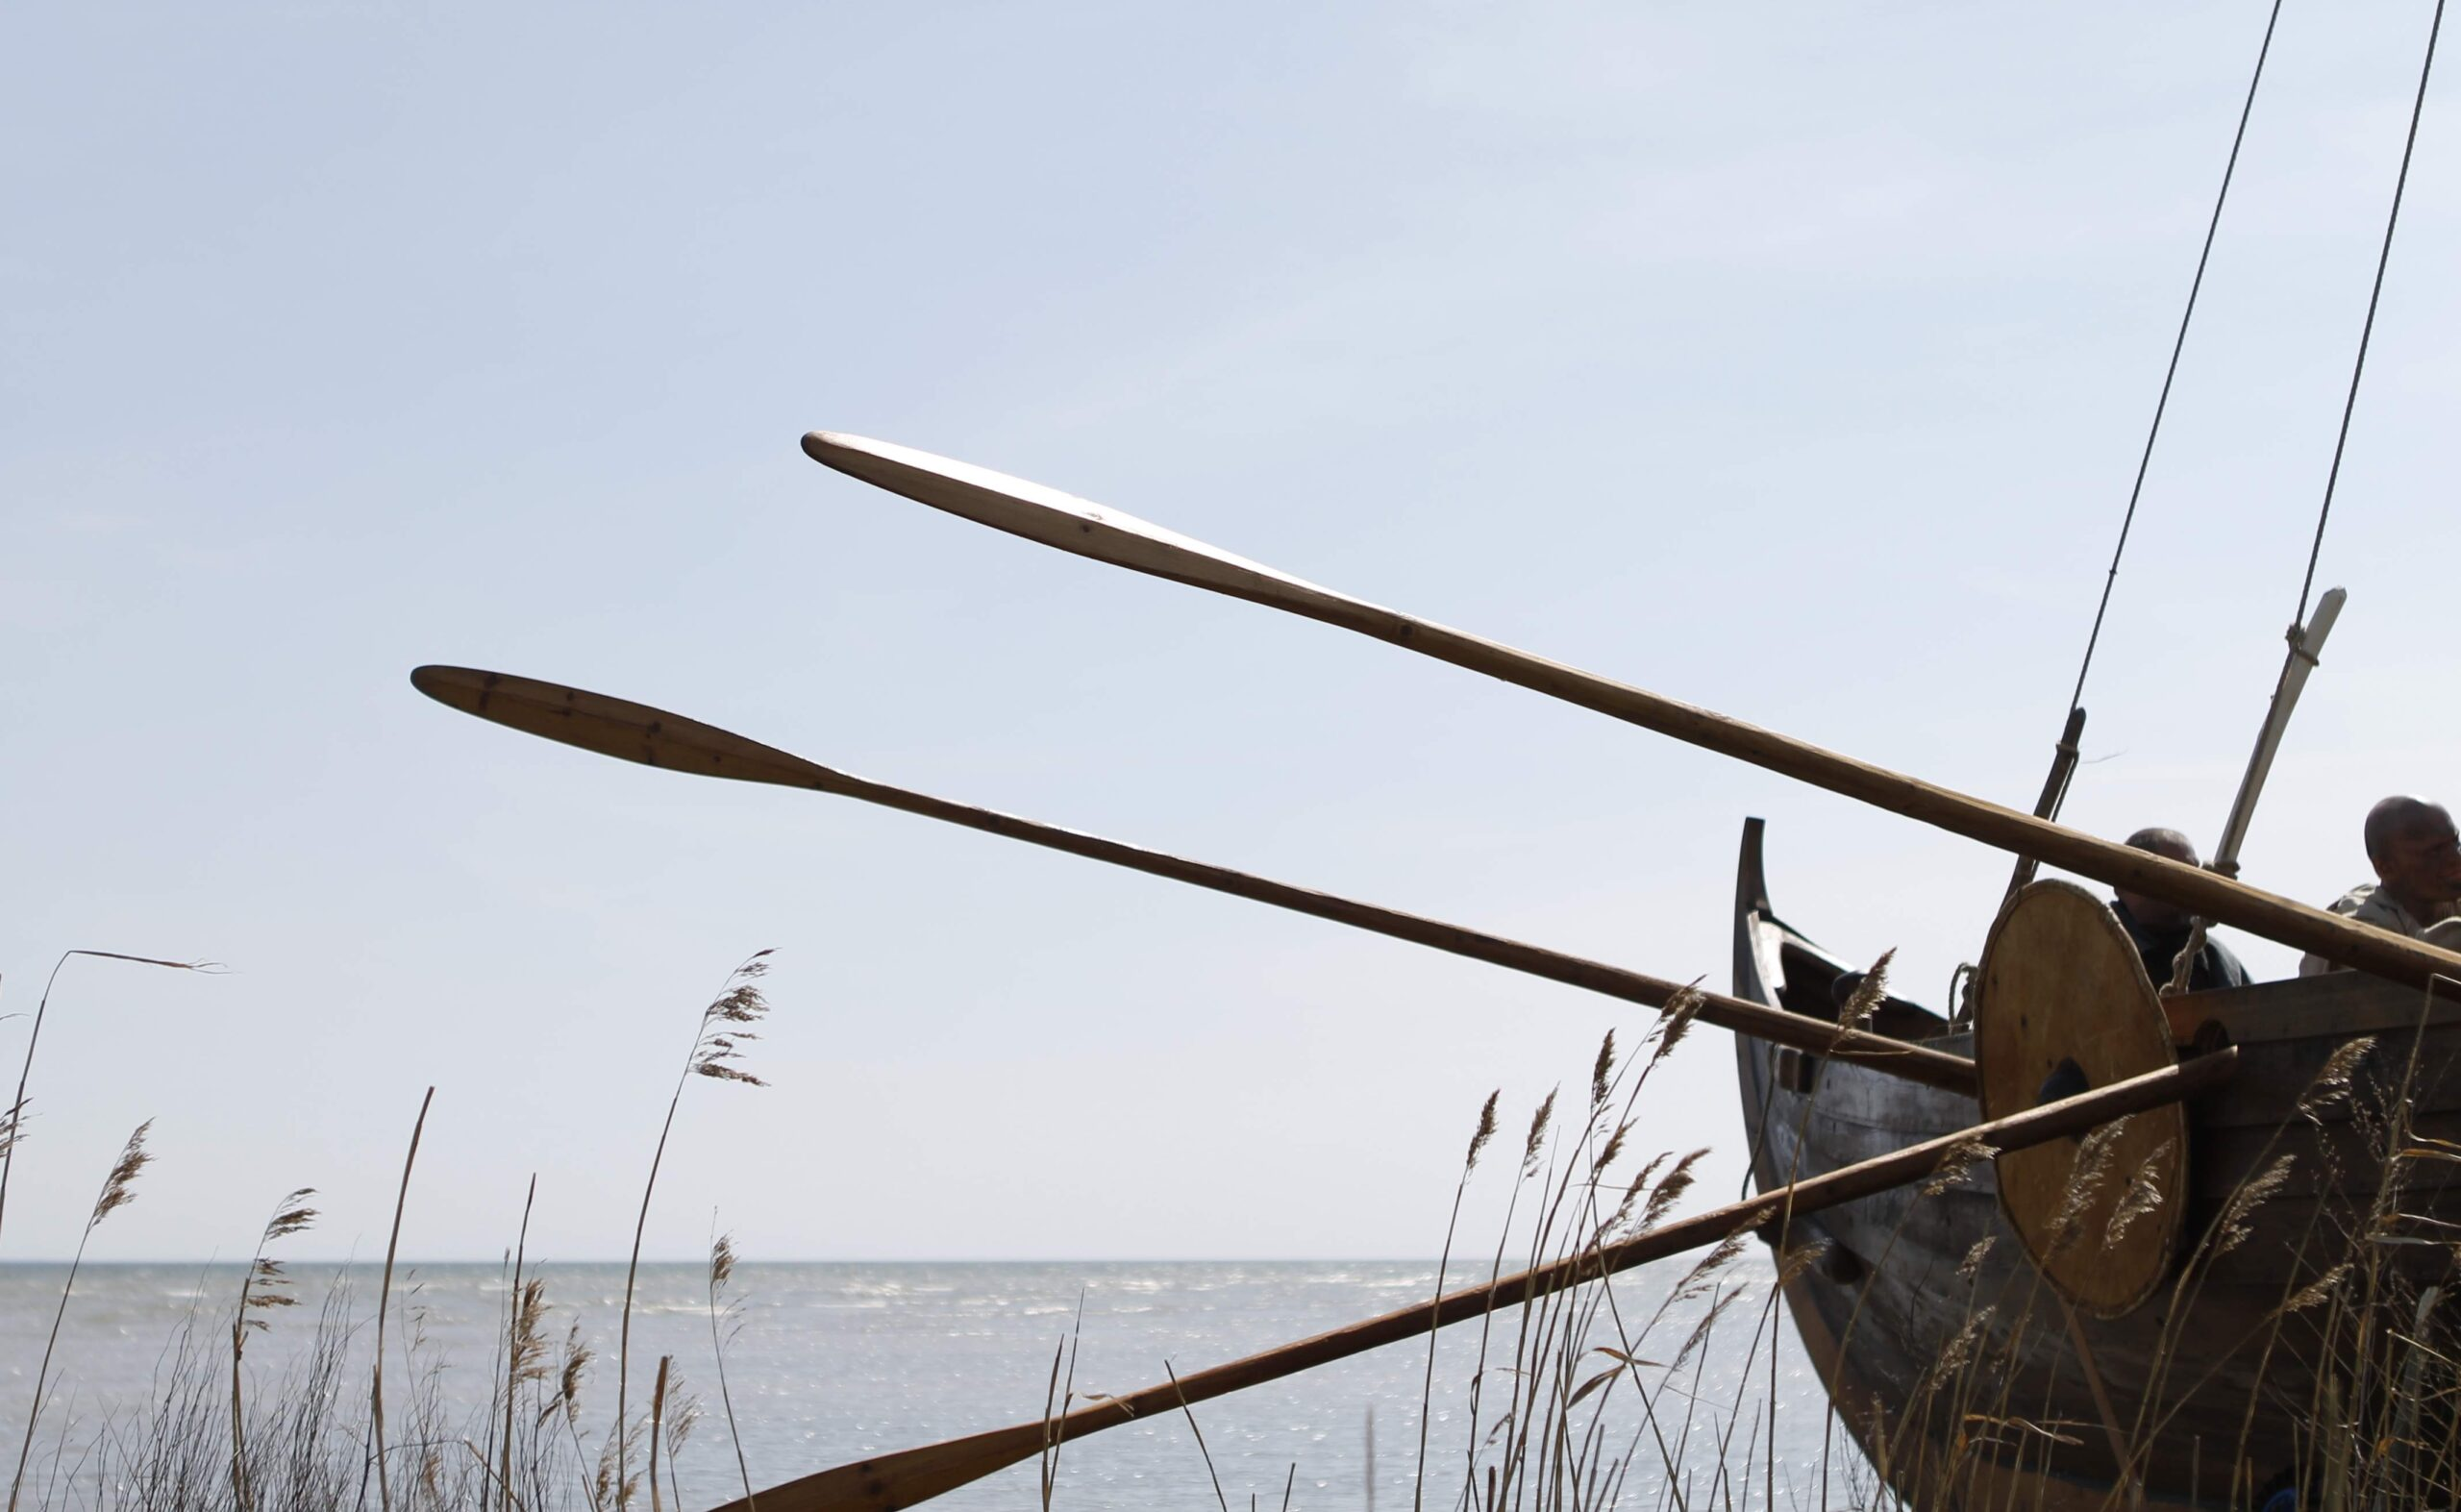 """Be sure to visit the exhibition """"Vikings before Vikings"""" at Saaremaa Museum, where the finds of the Salme Viking ship are on display for the first time. www.saaremaamuuseum.ee Foto: Margit Kõrvits"""